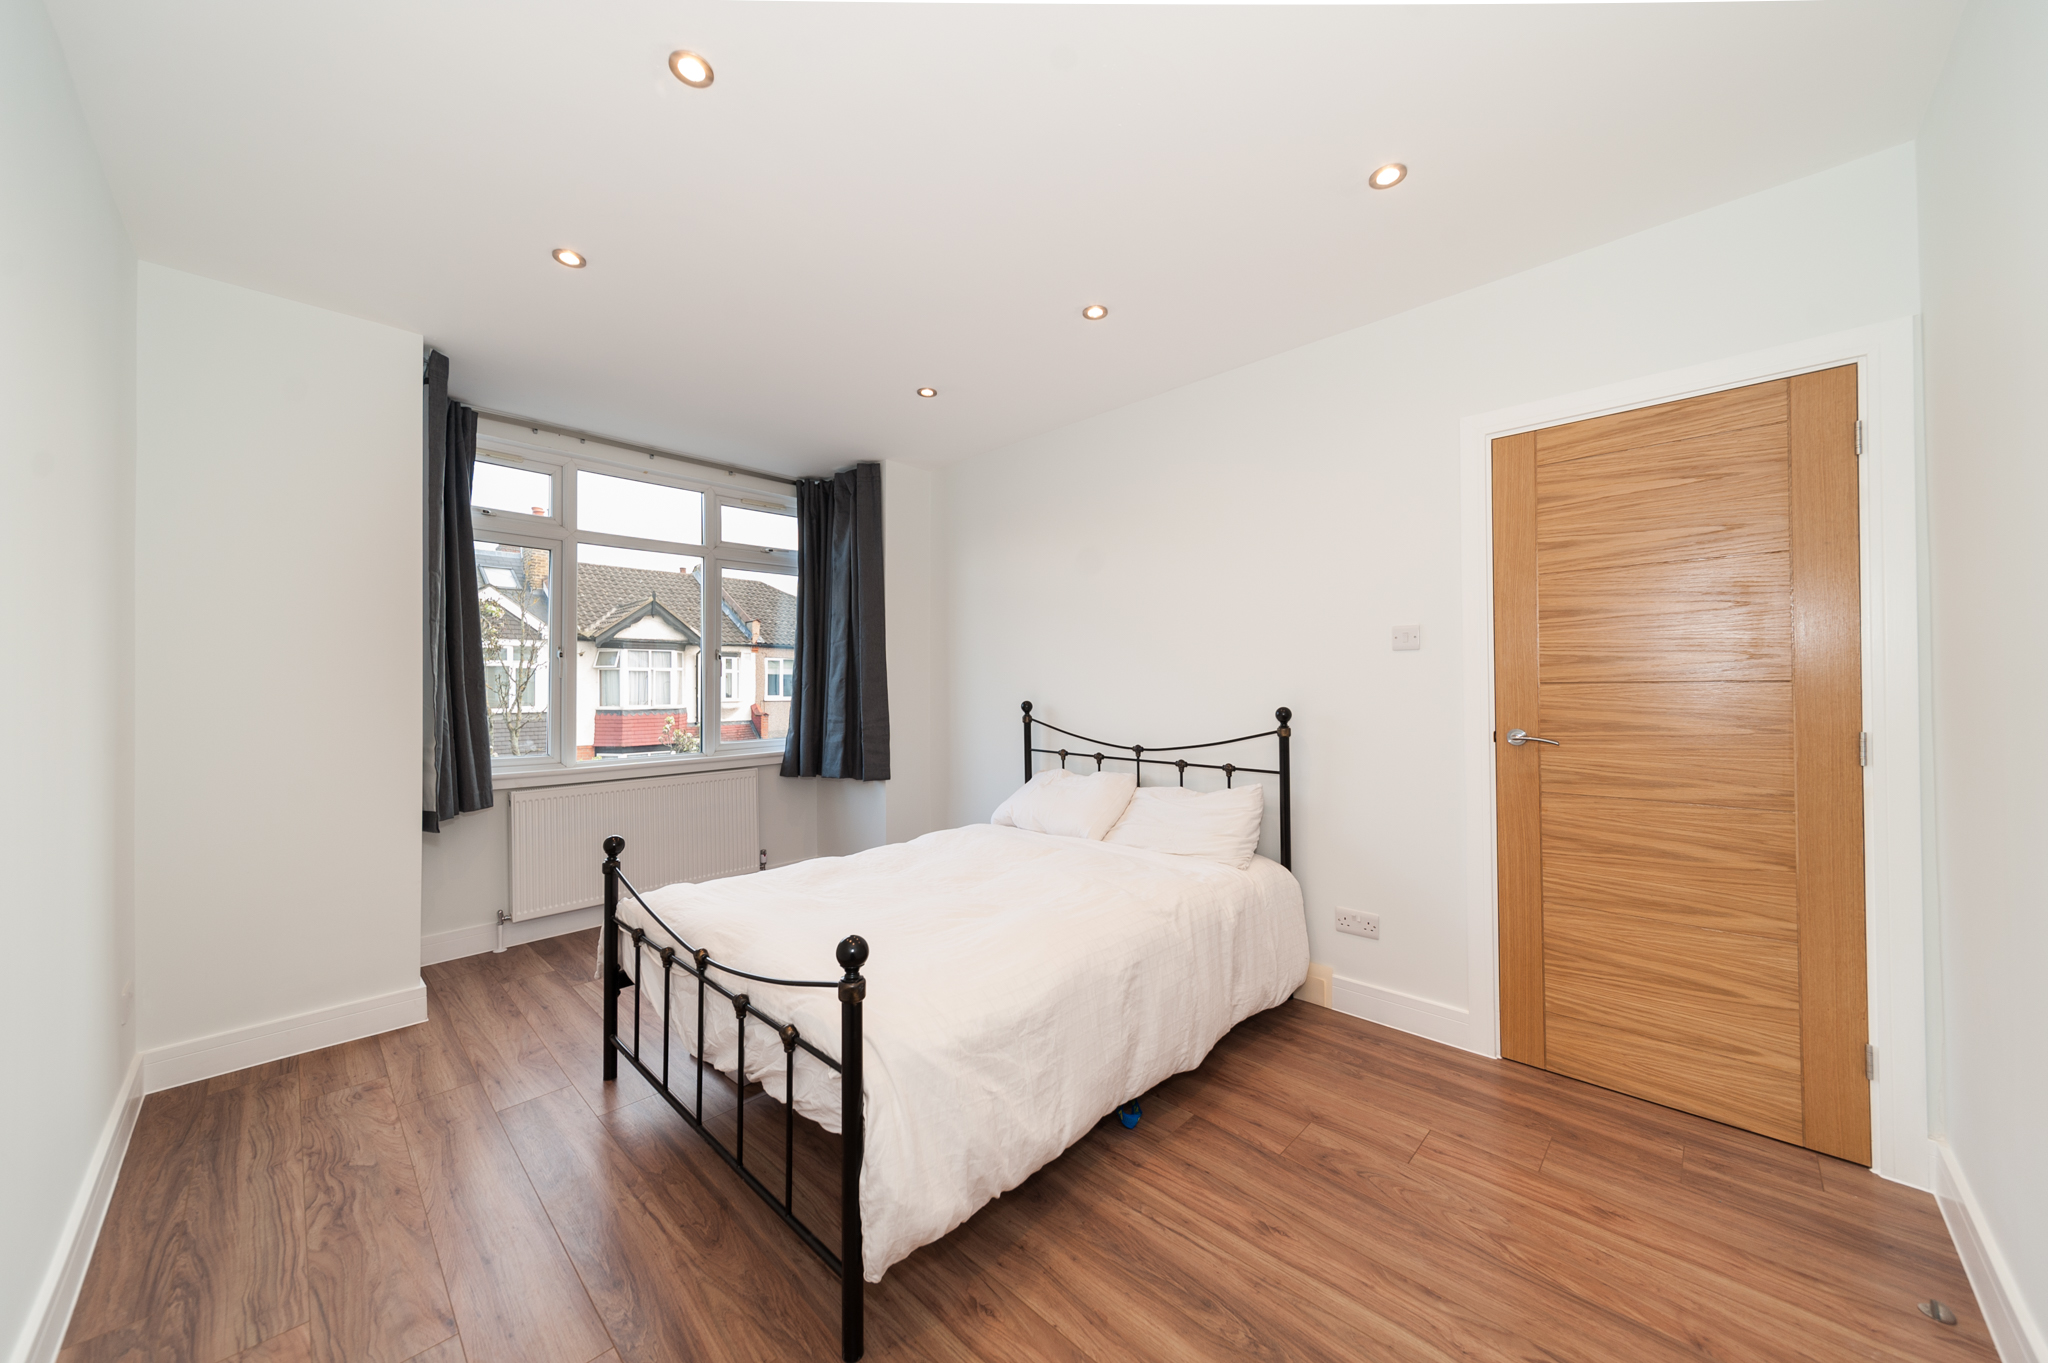 Amazing Refurbed 5 Bed HMO - Guaranteed Rent Option For Sale